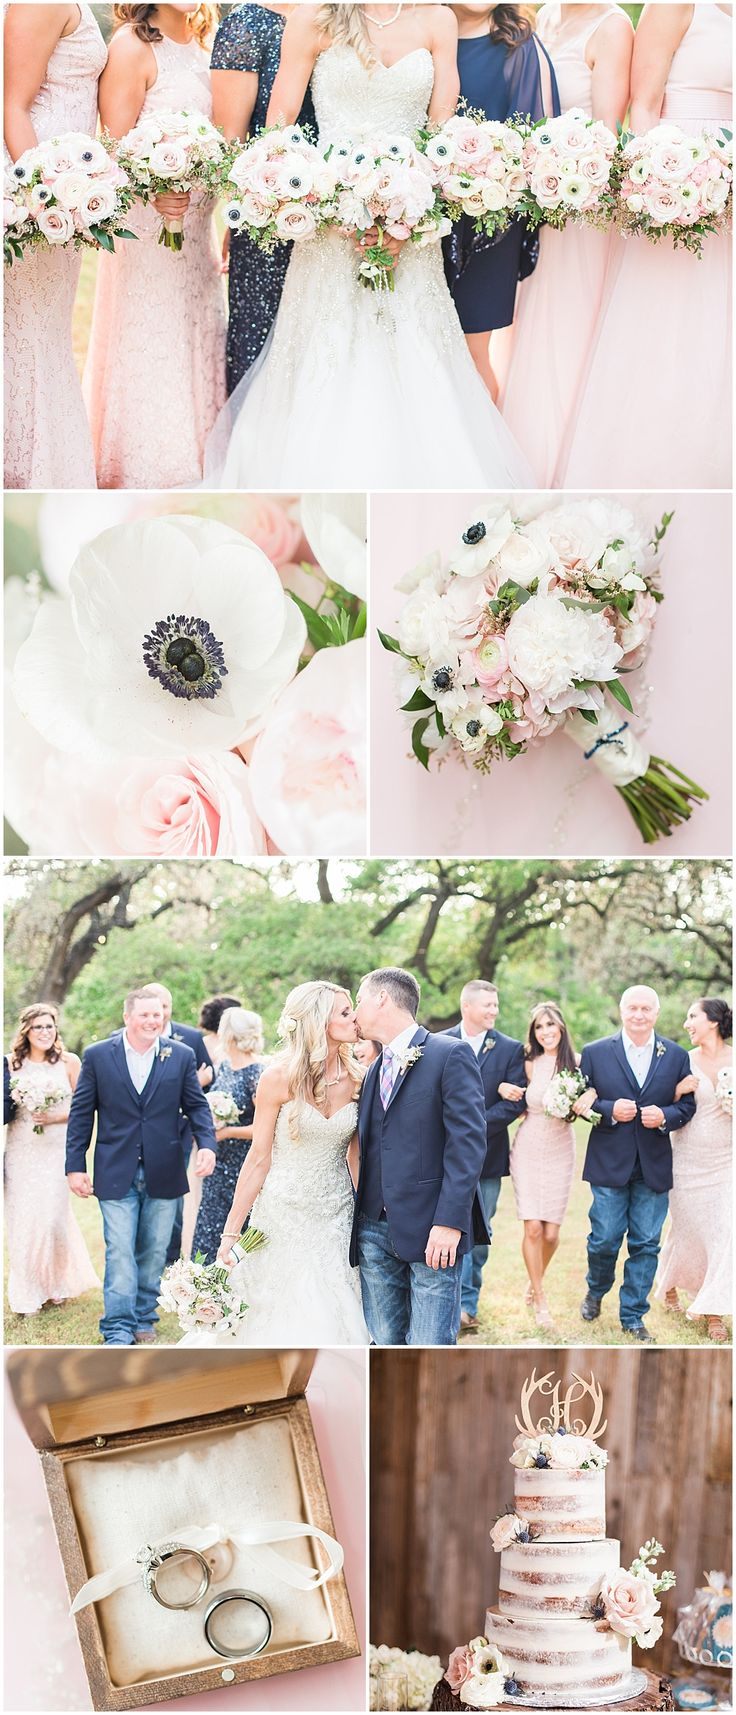 blush navy and gold wedding at Sisterdale dance hall in Boerne Texas by Allison Jeffers Wedding Photography 0127